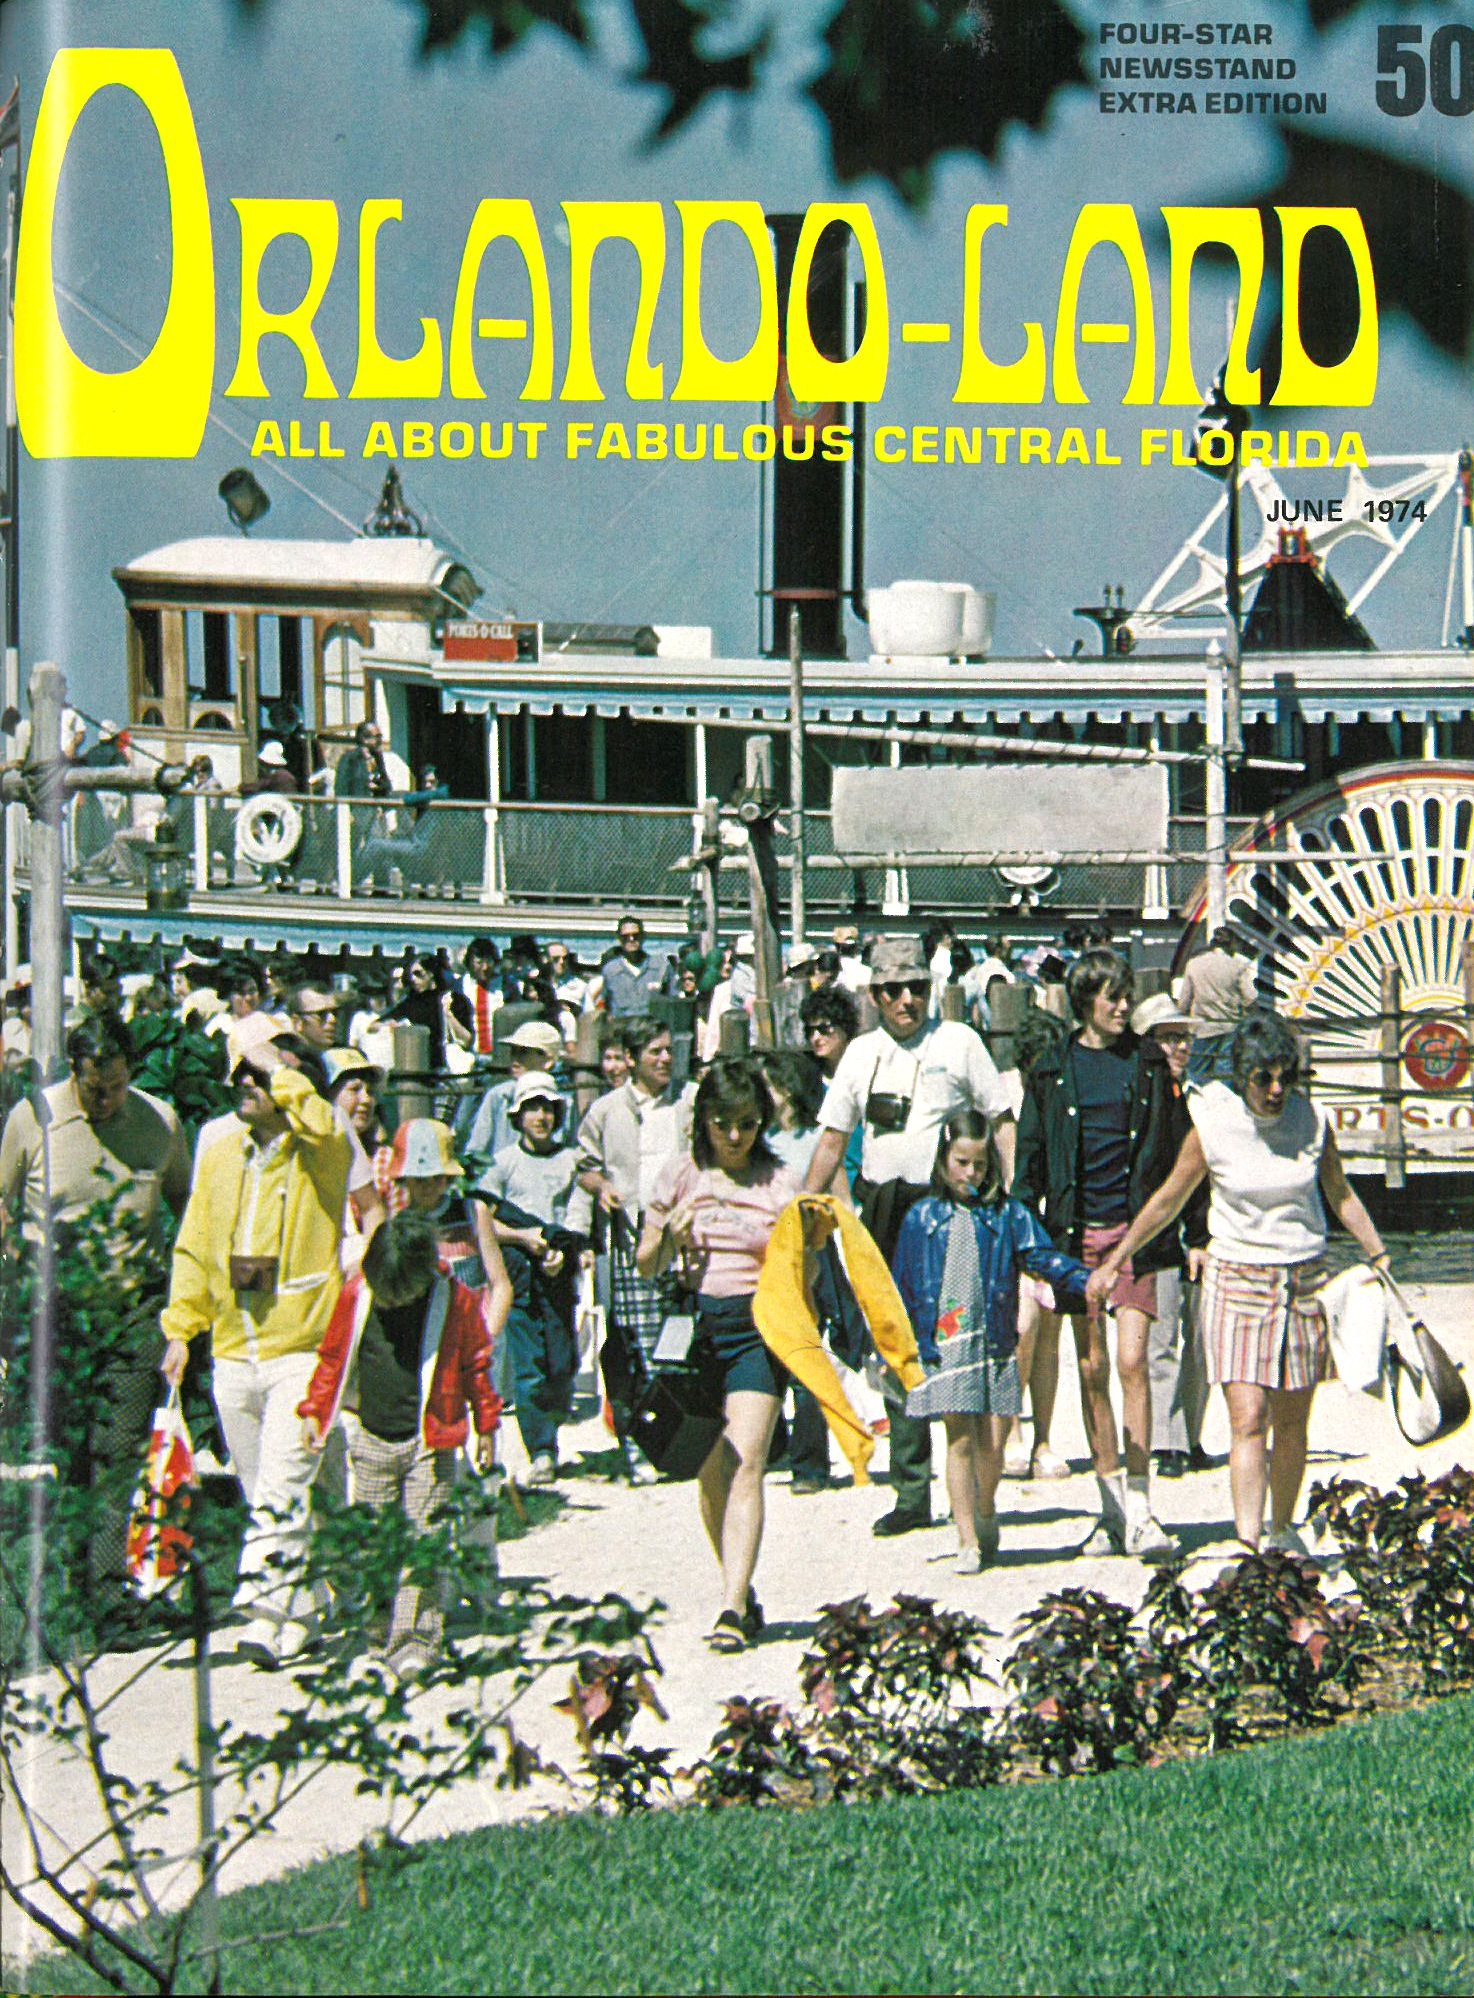 Vintage edition of Orlando magazine from June 1974, then